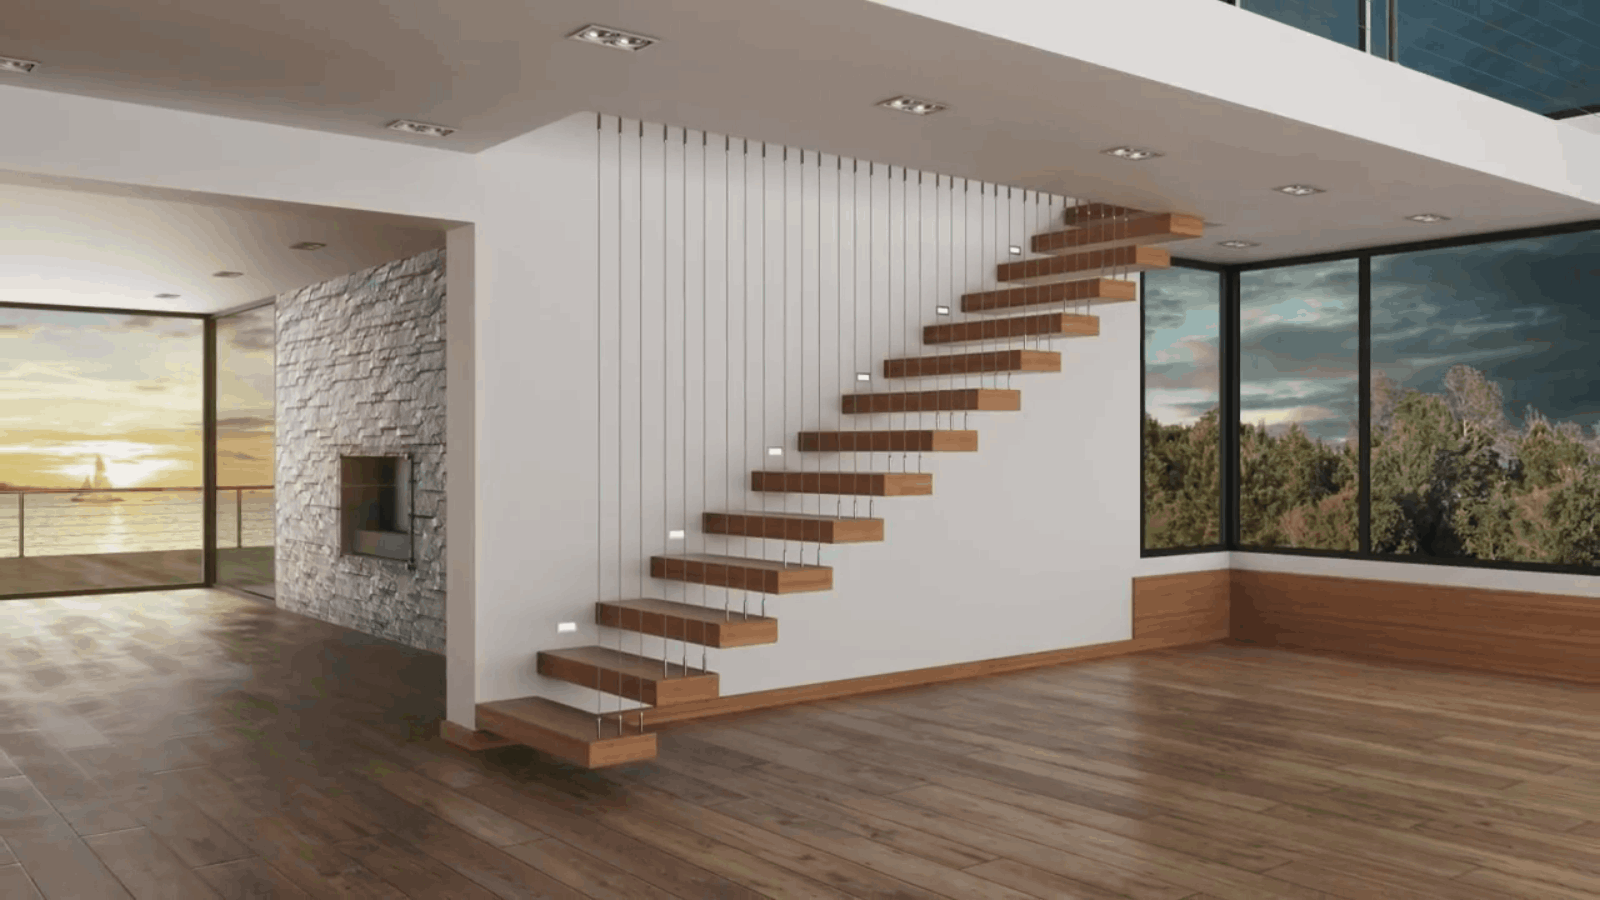 Vertical balustrade using stainless steel wire rope for staircase